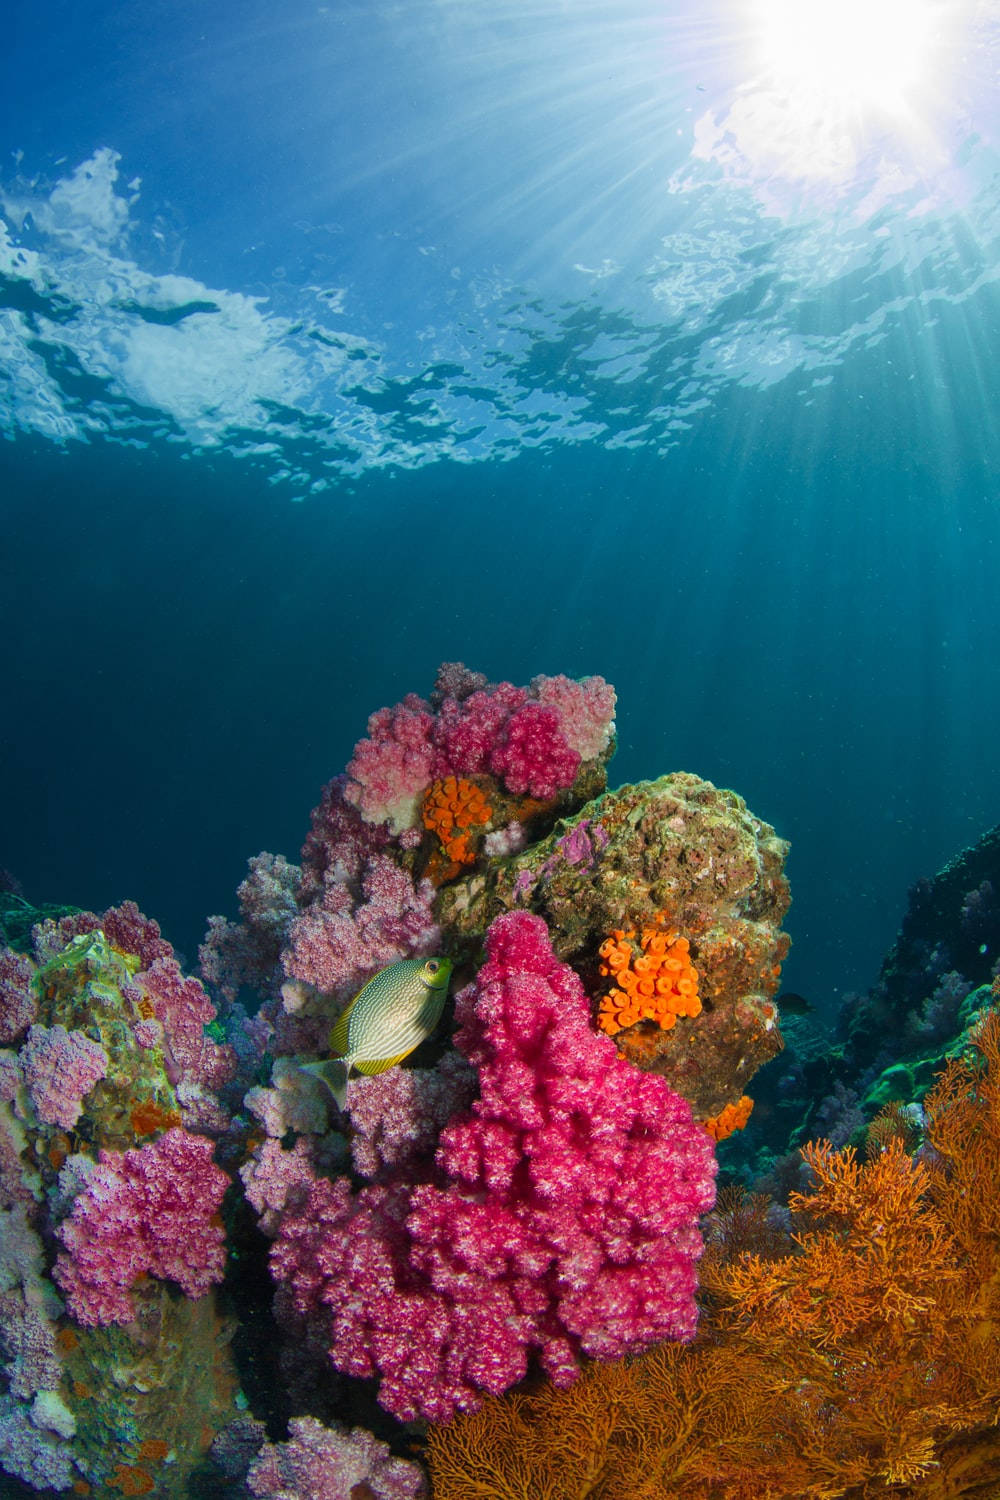 brown fish beside coral under body of water